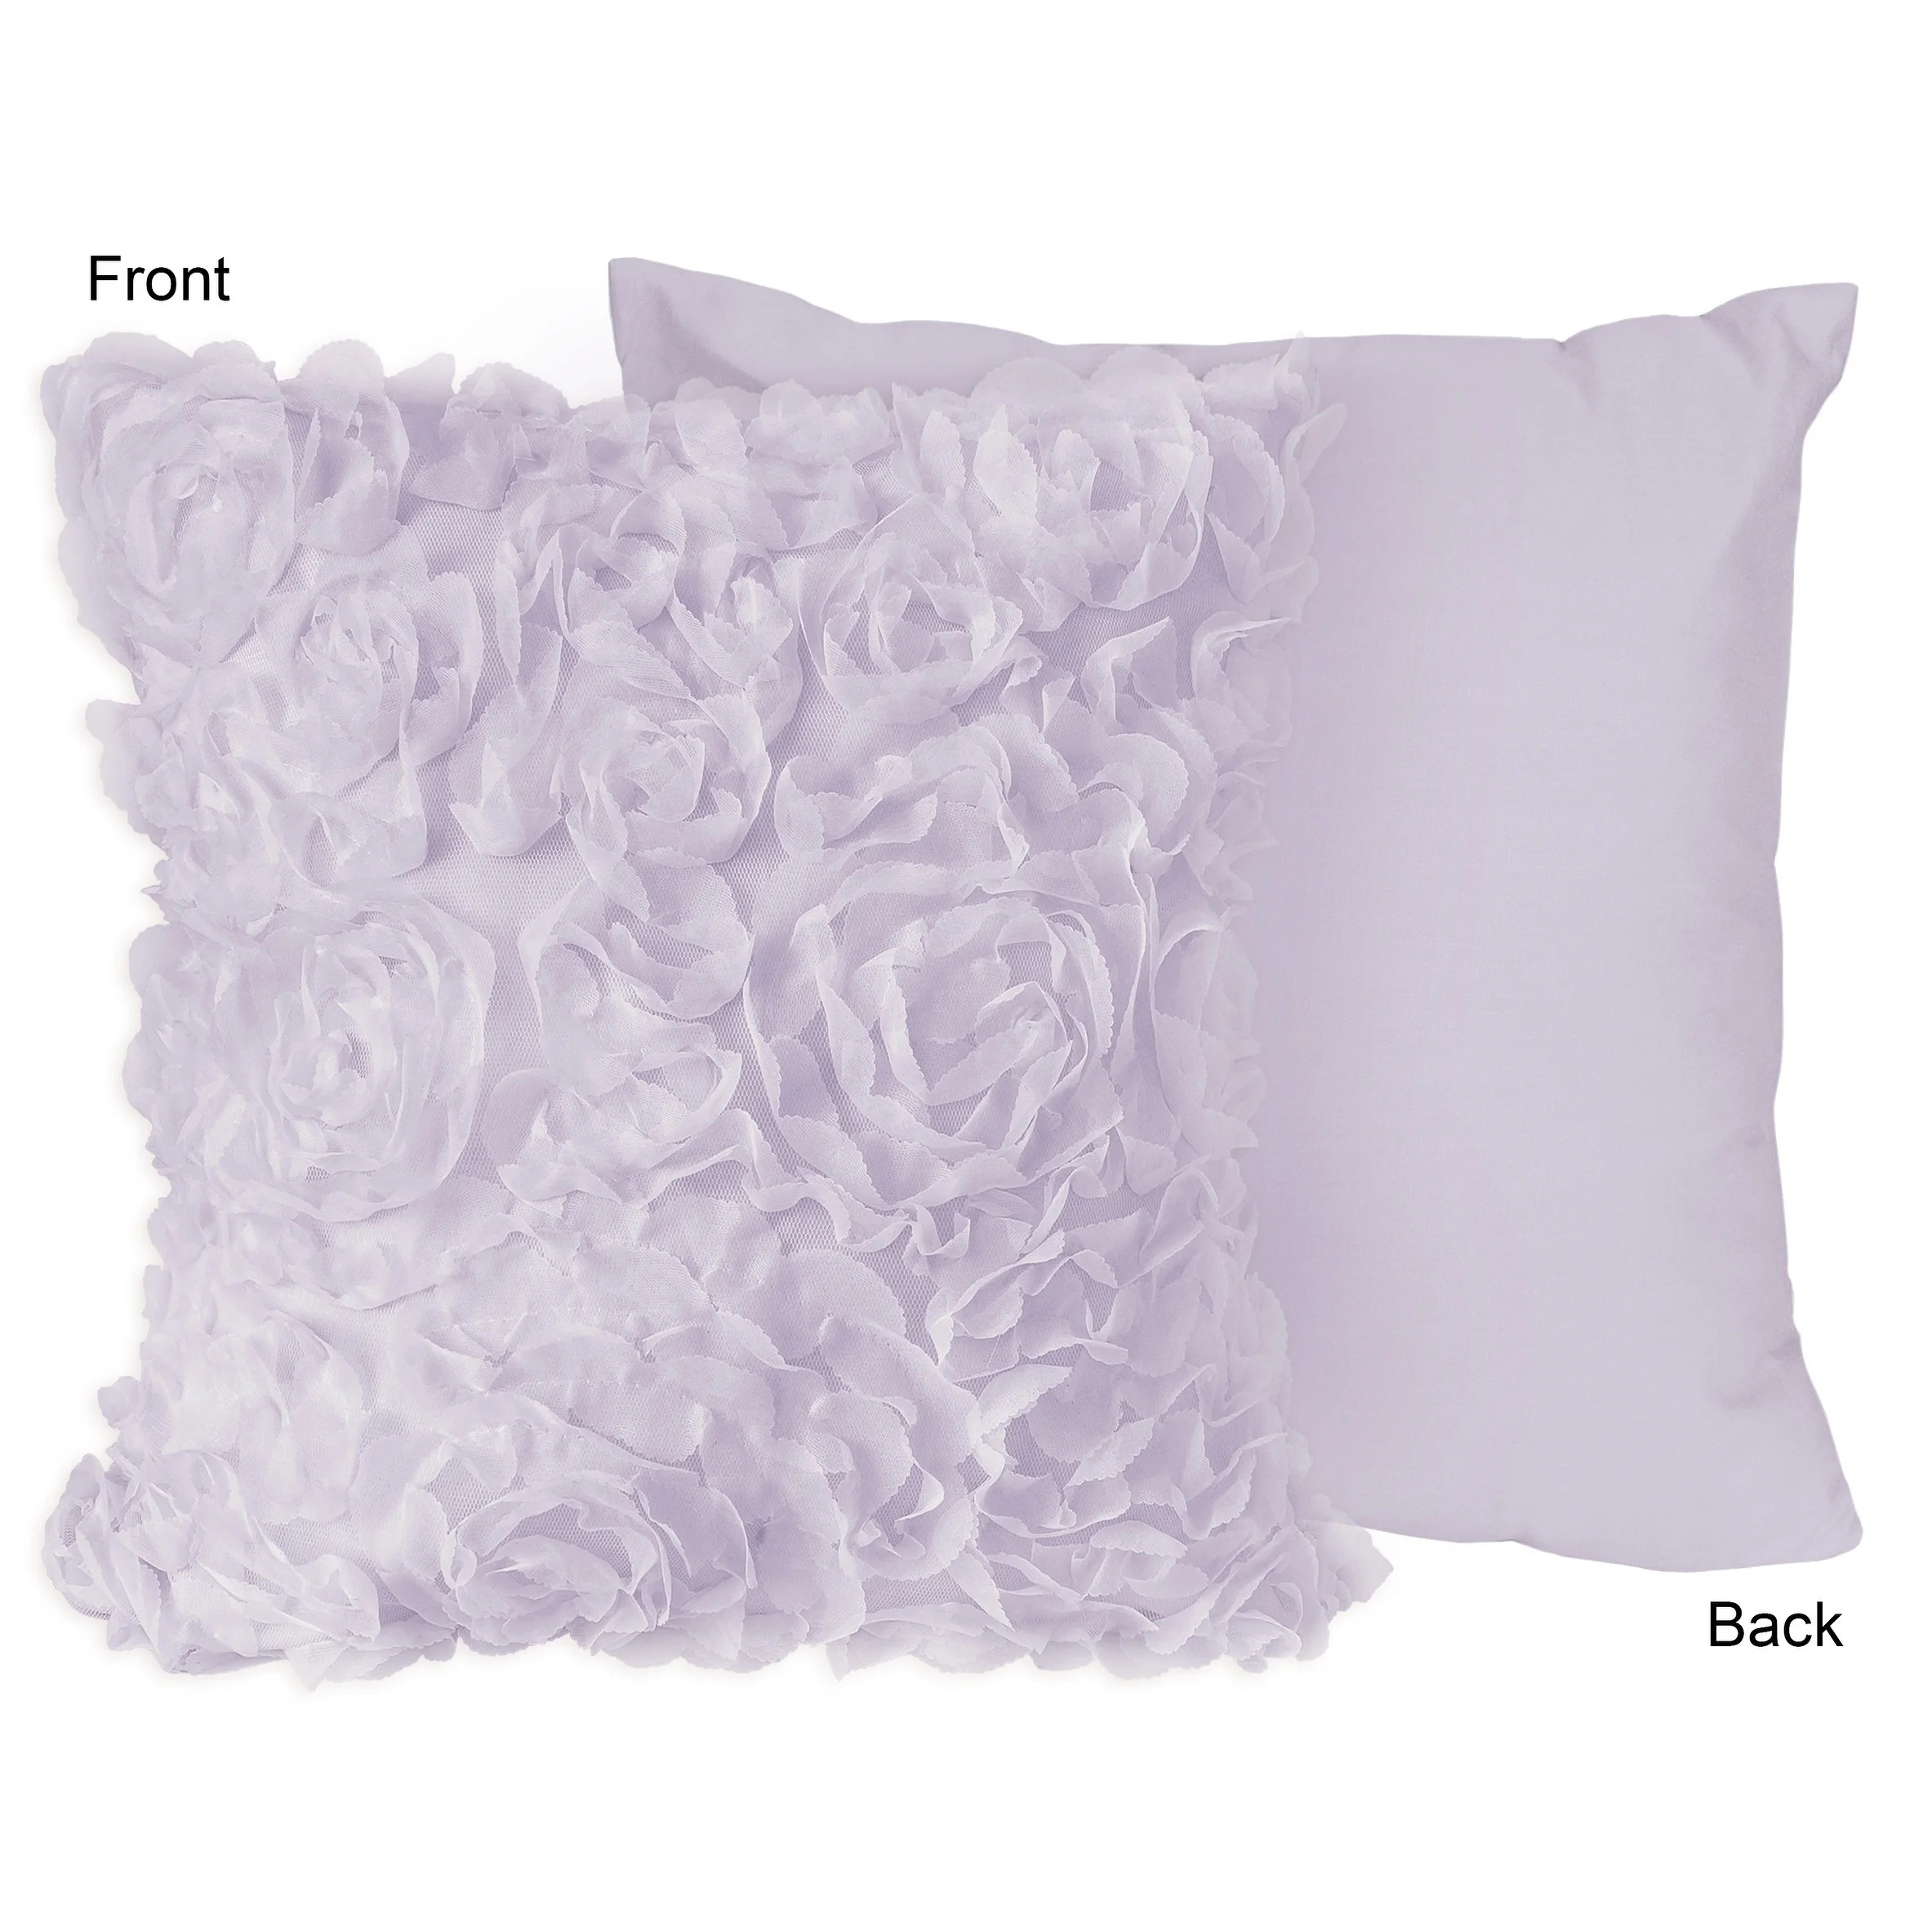 purple floral rose 18in decorative accent throw pillows set of 2 lavender flower luxurious elegant princess boho shabby chic